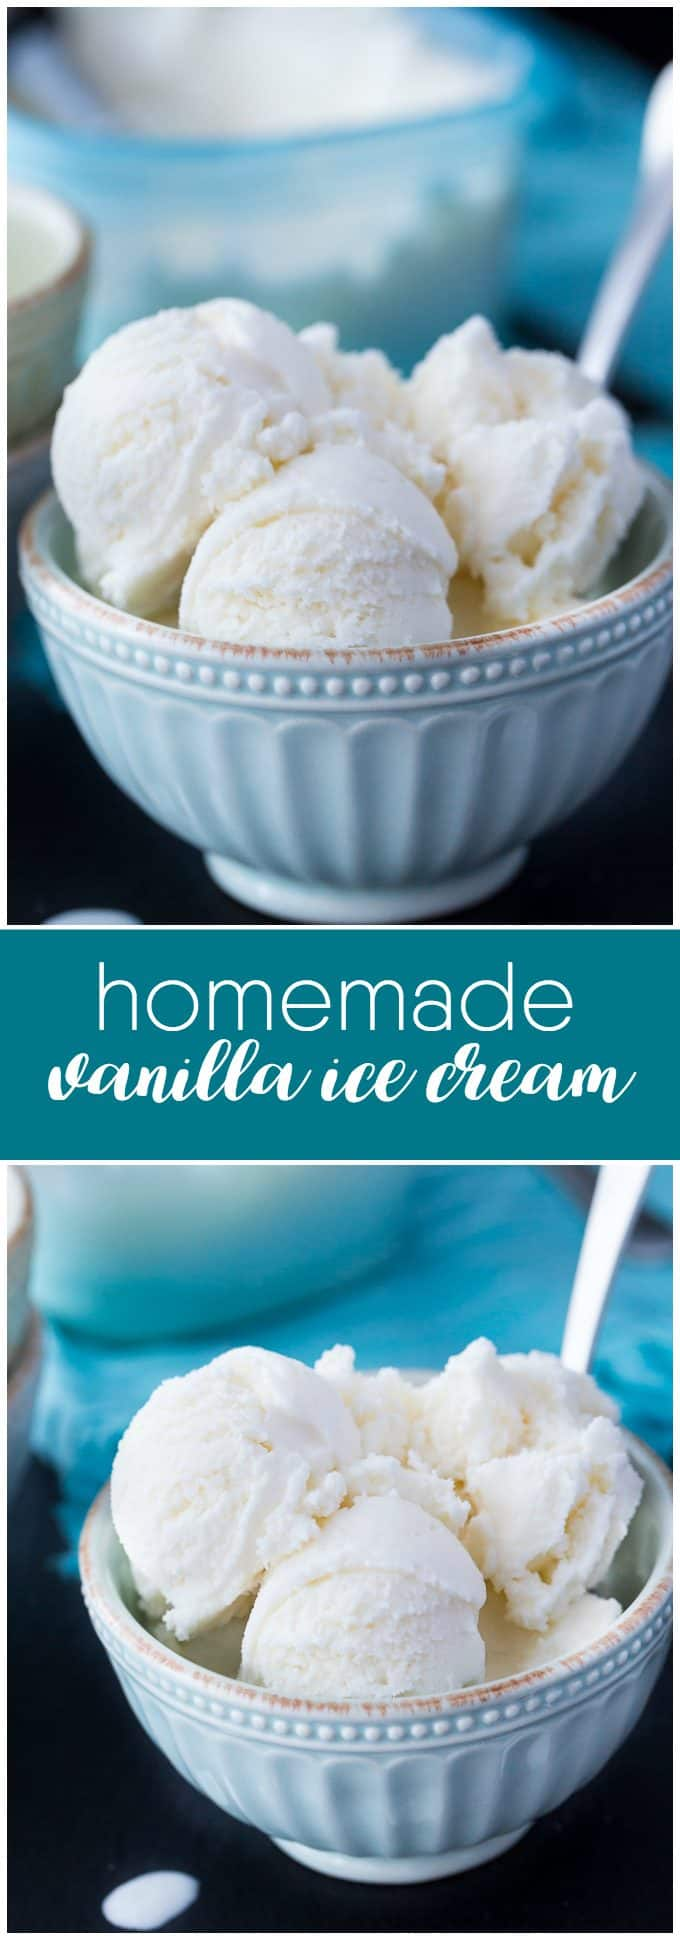 Homemade Vanilla Ice Cream - Creamy and indulgent with a pure sweet vanilla flavour.